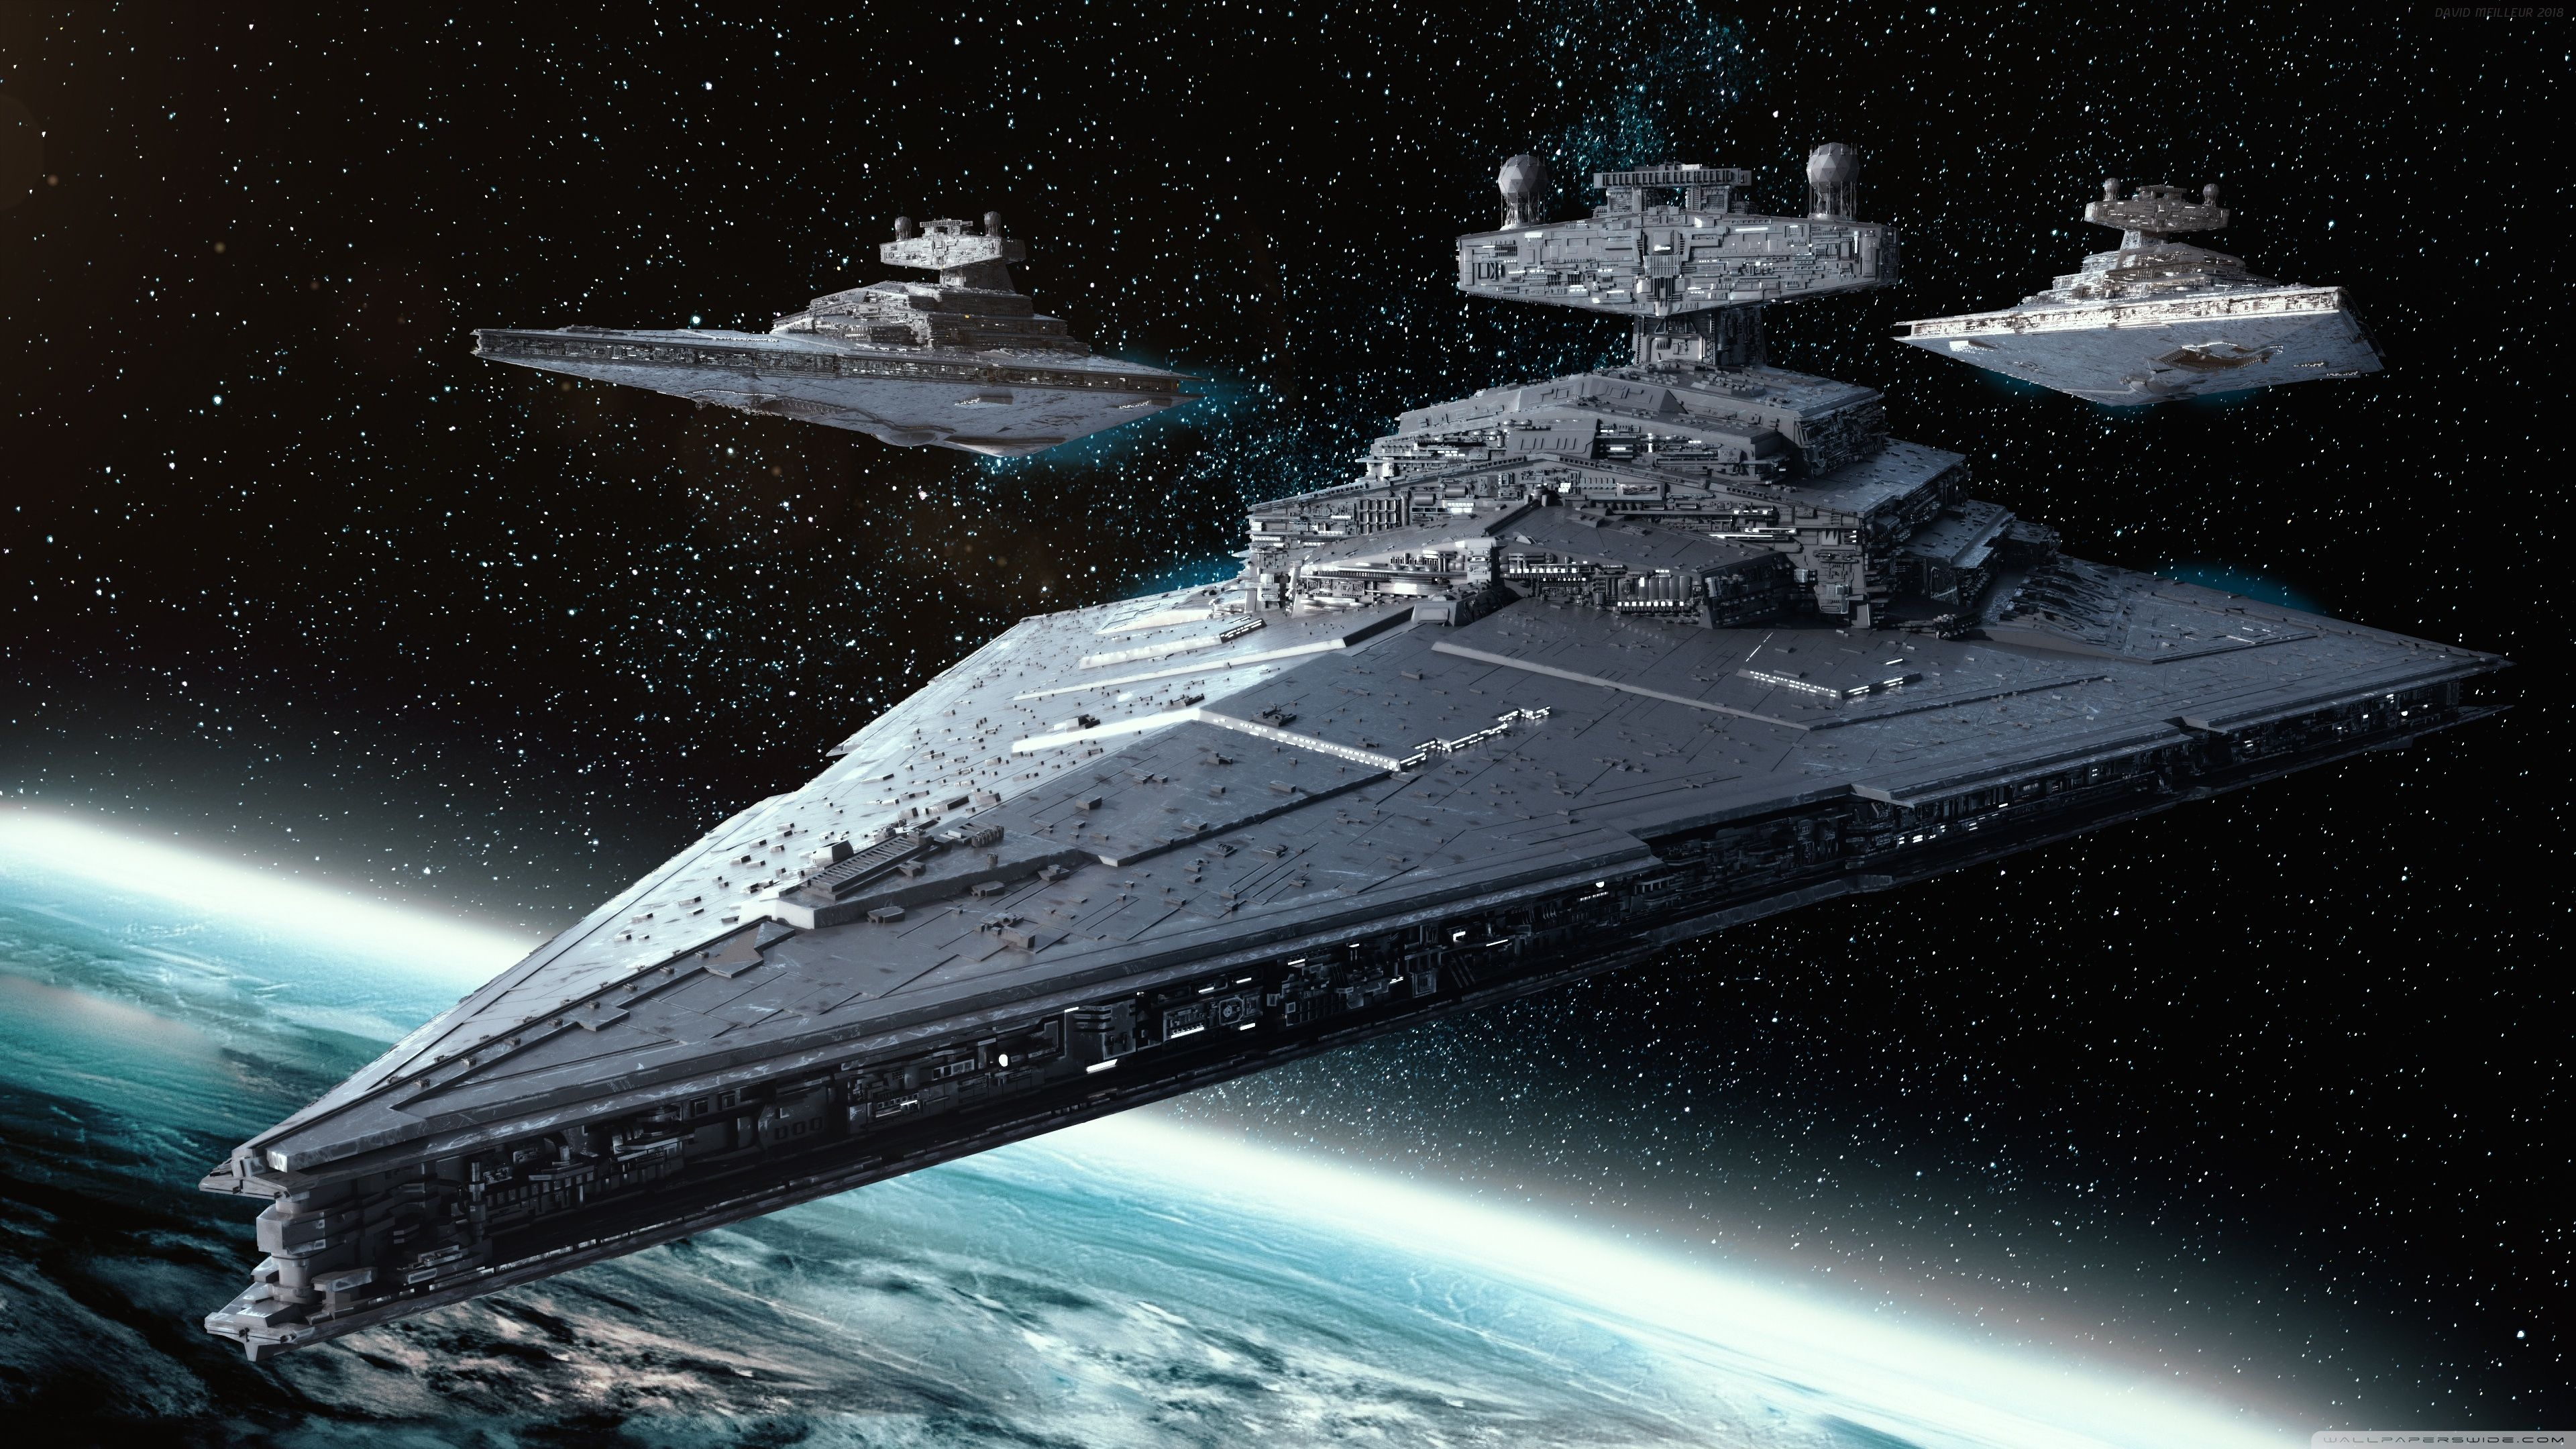 Imperial Star Destroyer Wallpapers - Wallpaper Cave